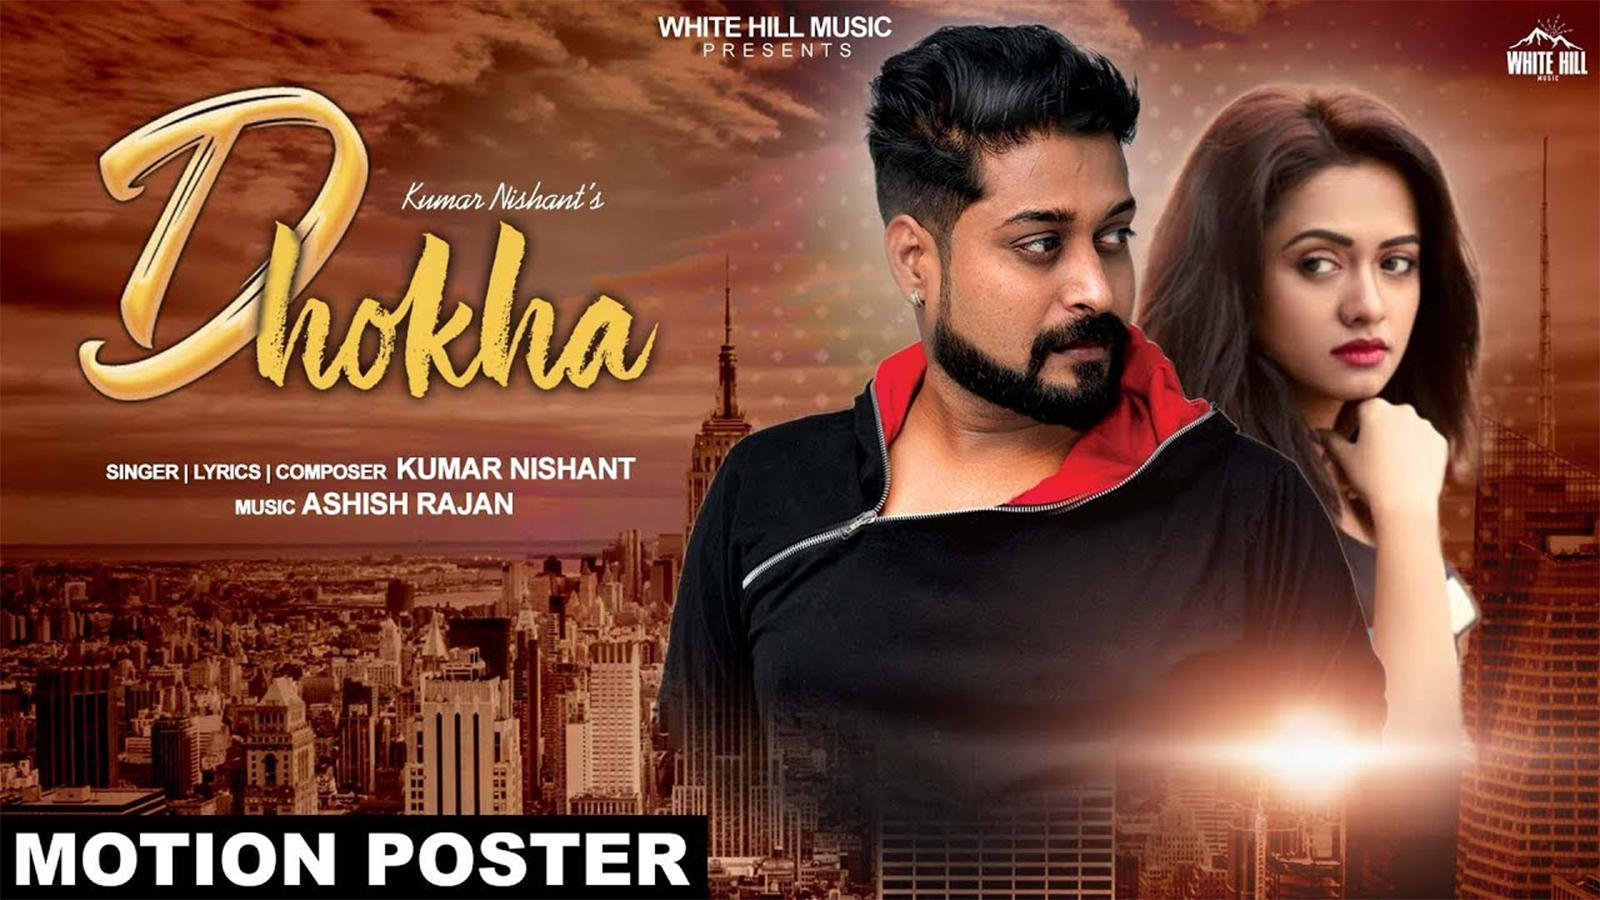 Latest Punjabi Song 'Dhokha' (Motion Poster) Sung By Kumar Nishant